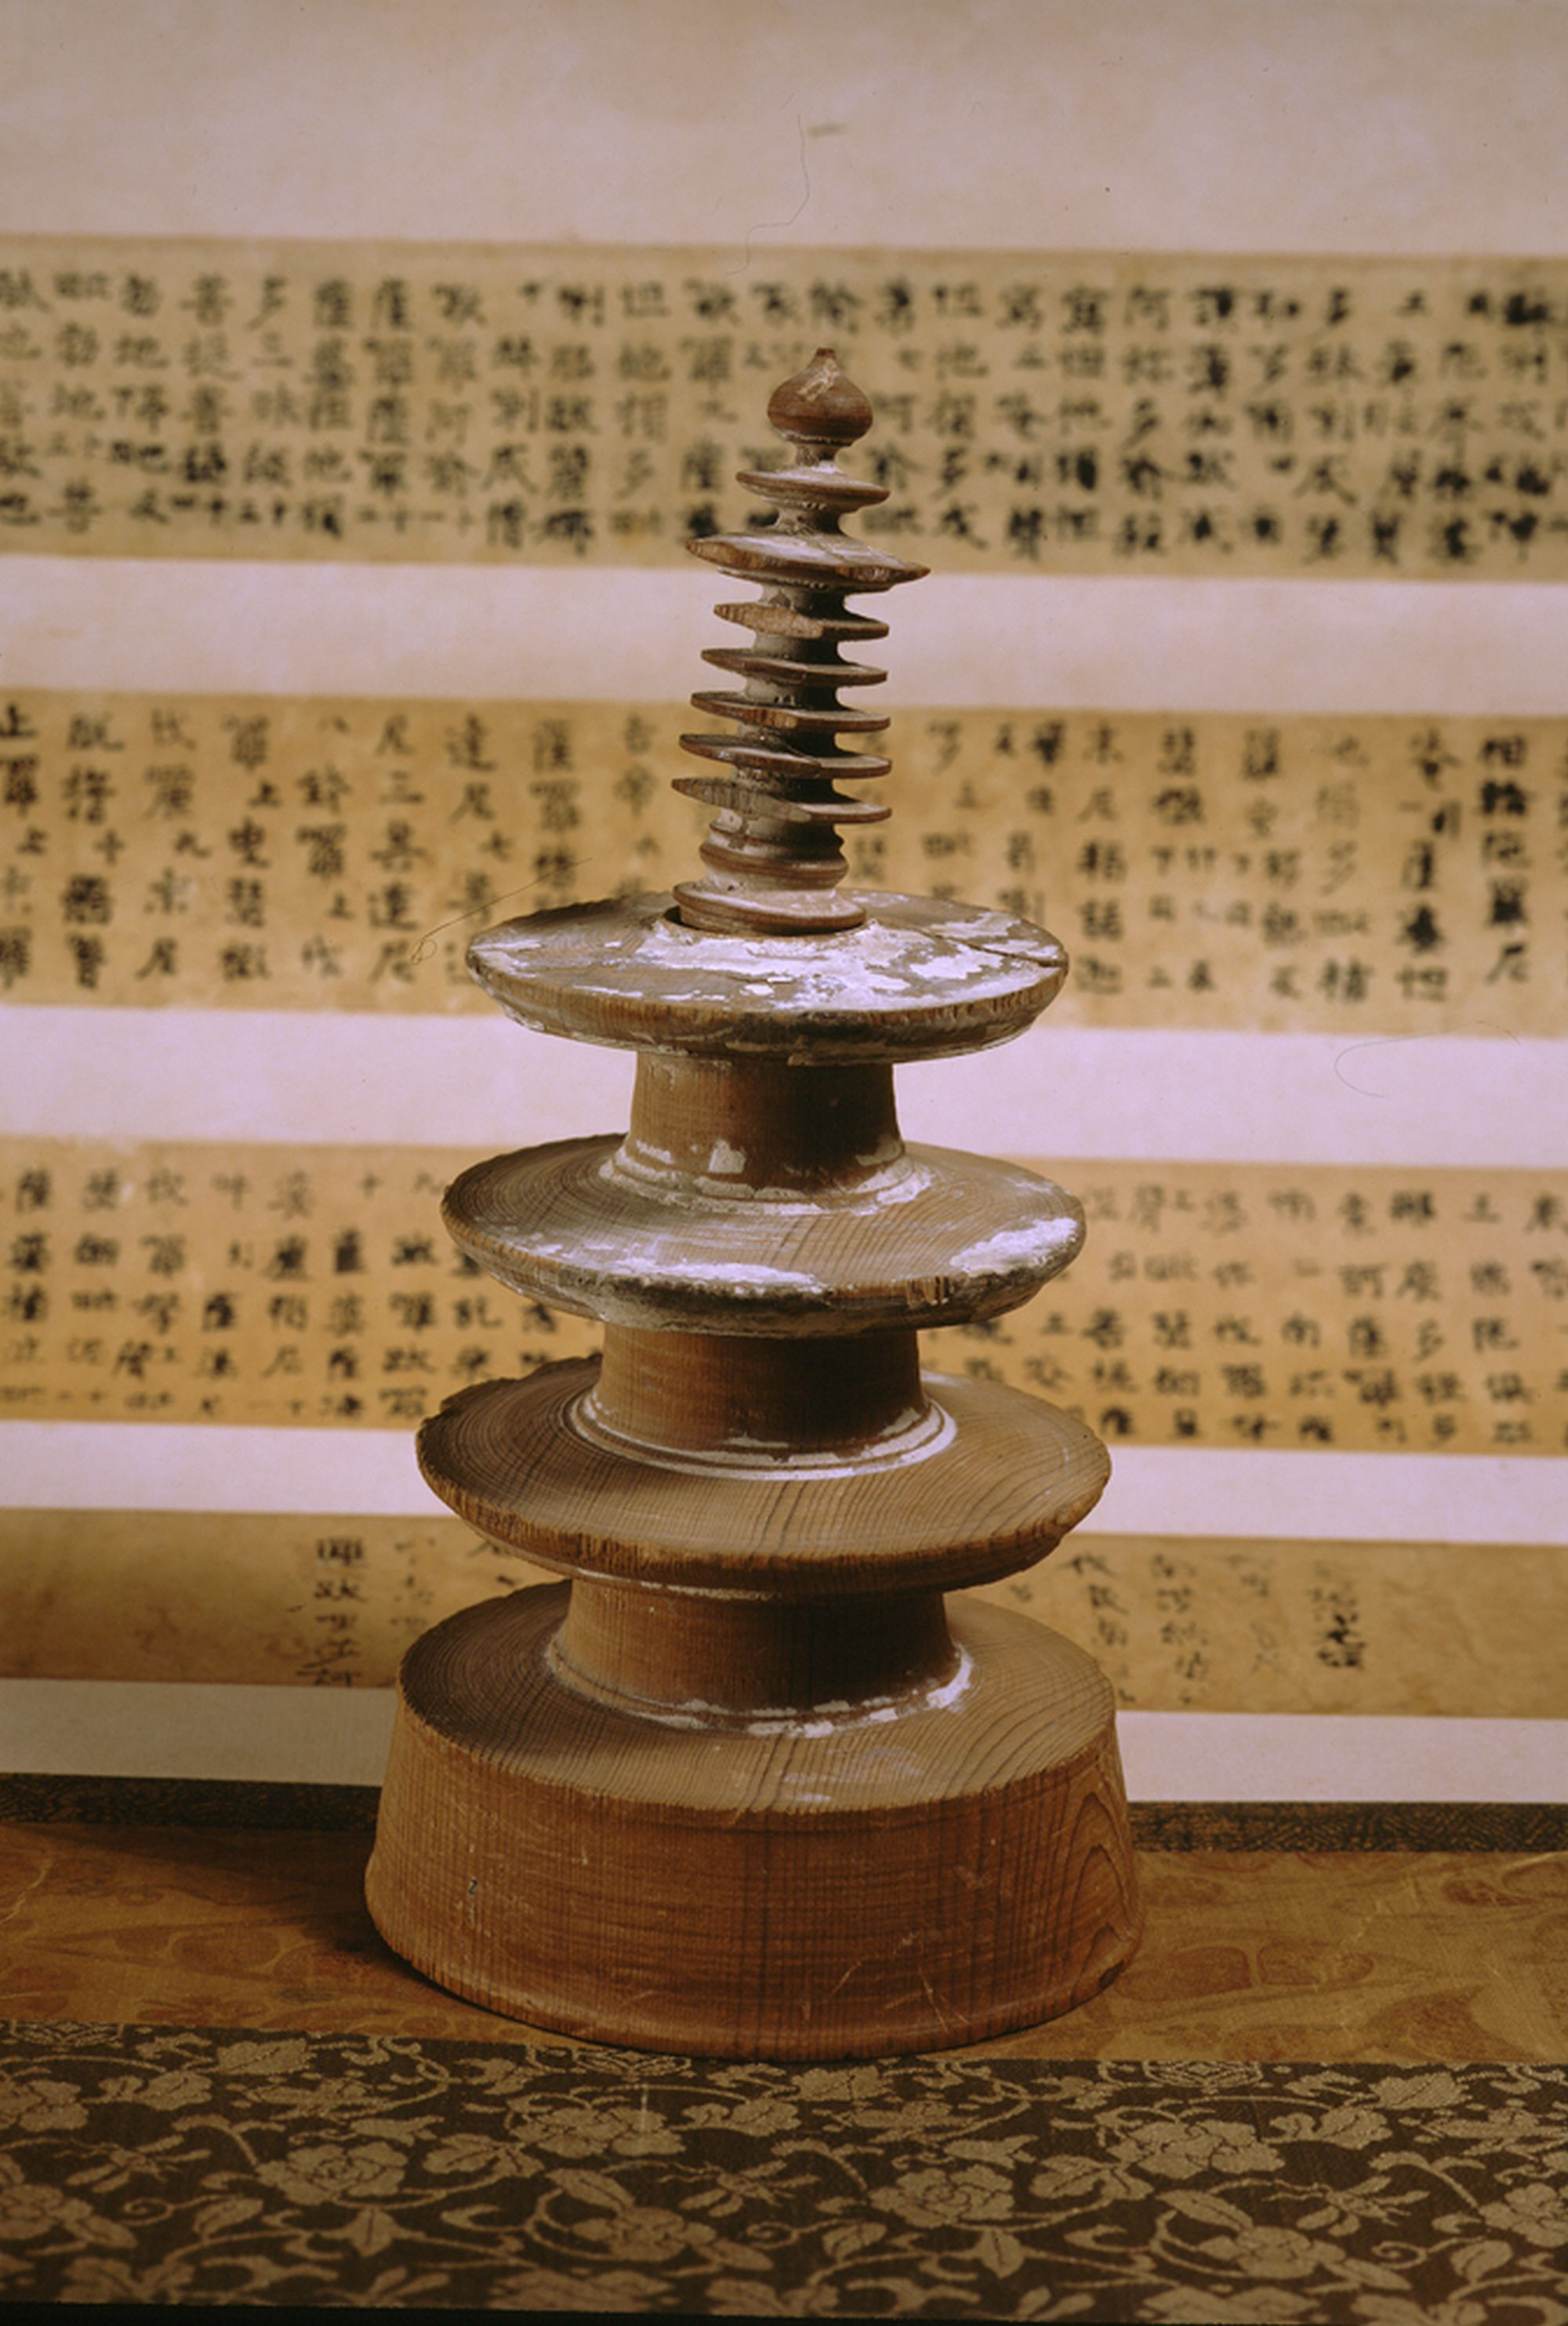 The Hyakumantō darani or 'One Million Pagoda Dharani' are the oldest extant examples of printing in Japan.